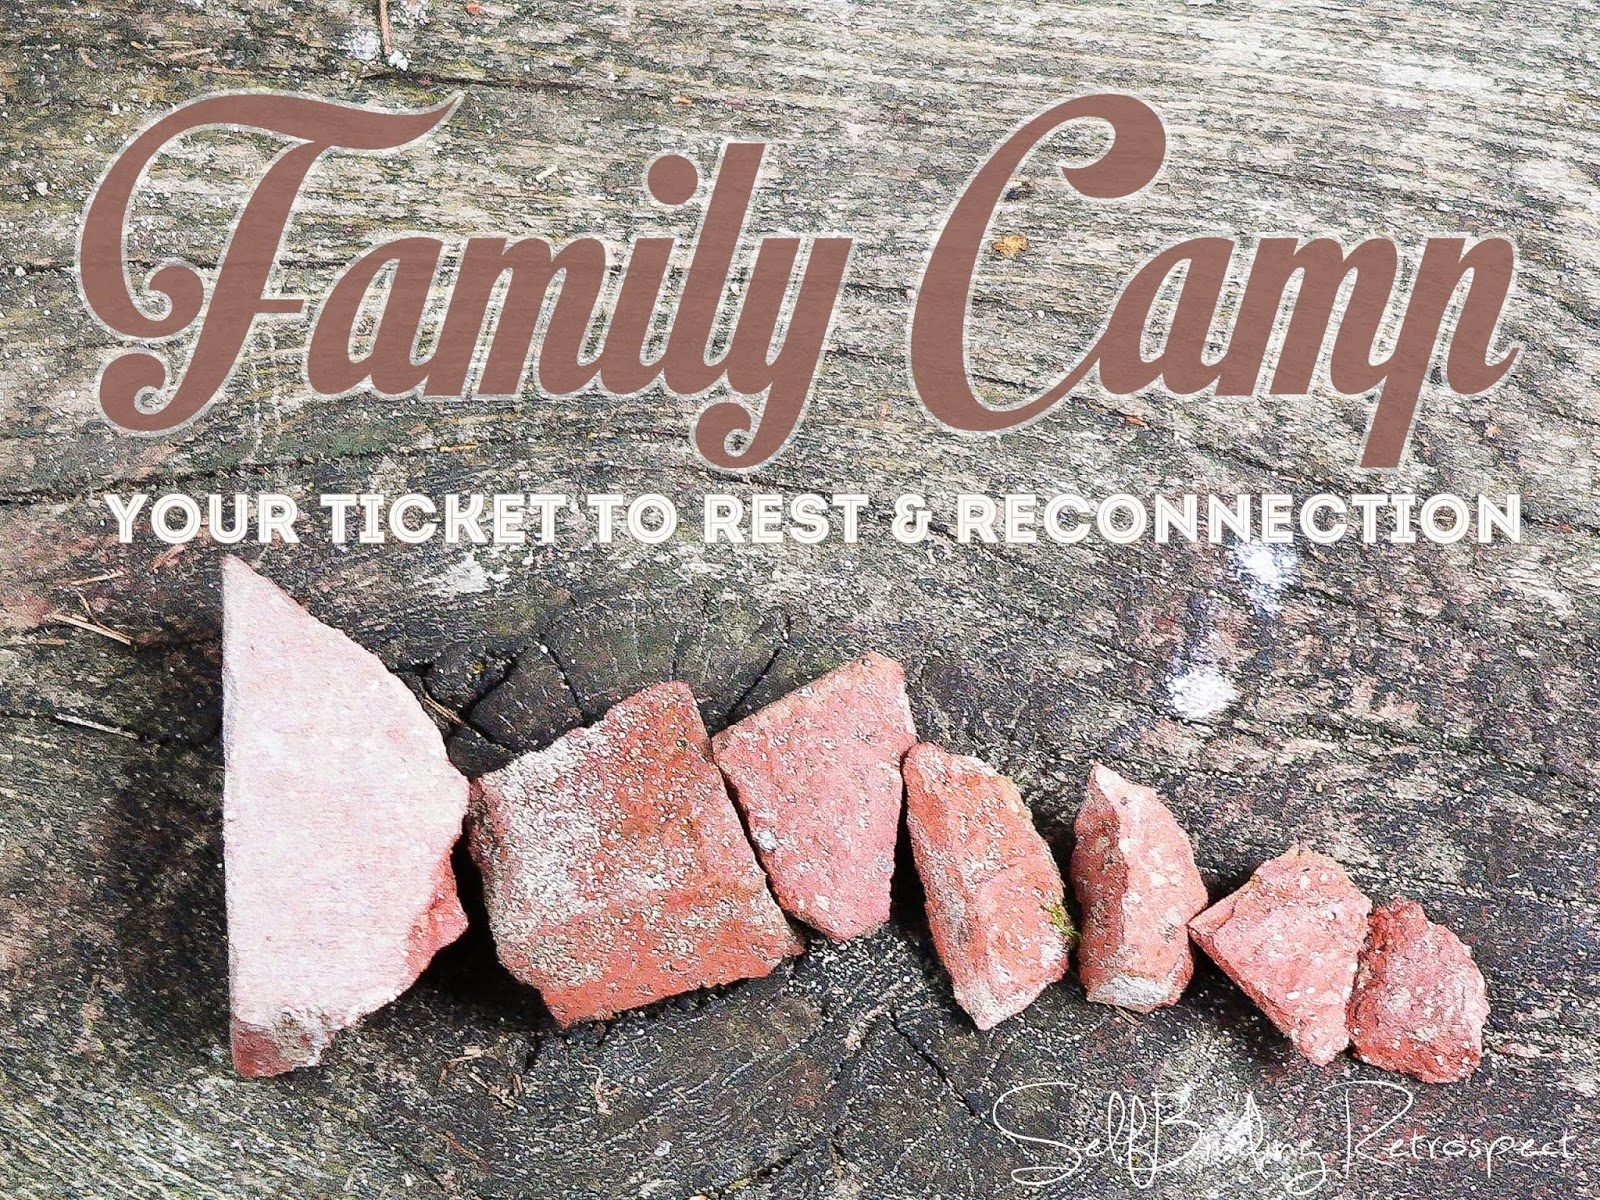 Family Camp {Your Ticket To Rest & Reconnection} - SelfBinding Retrospect by Alanna Rusnak